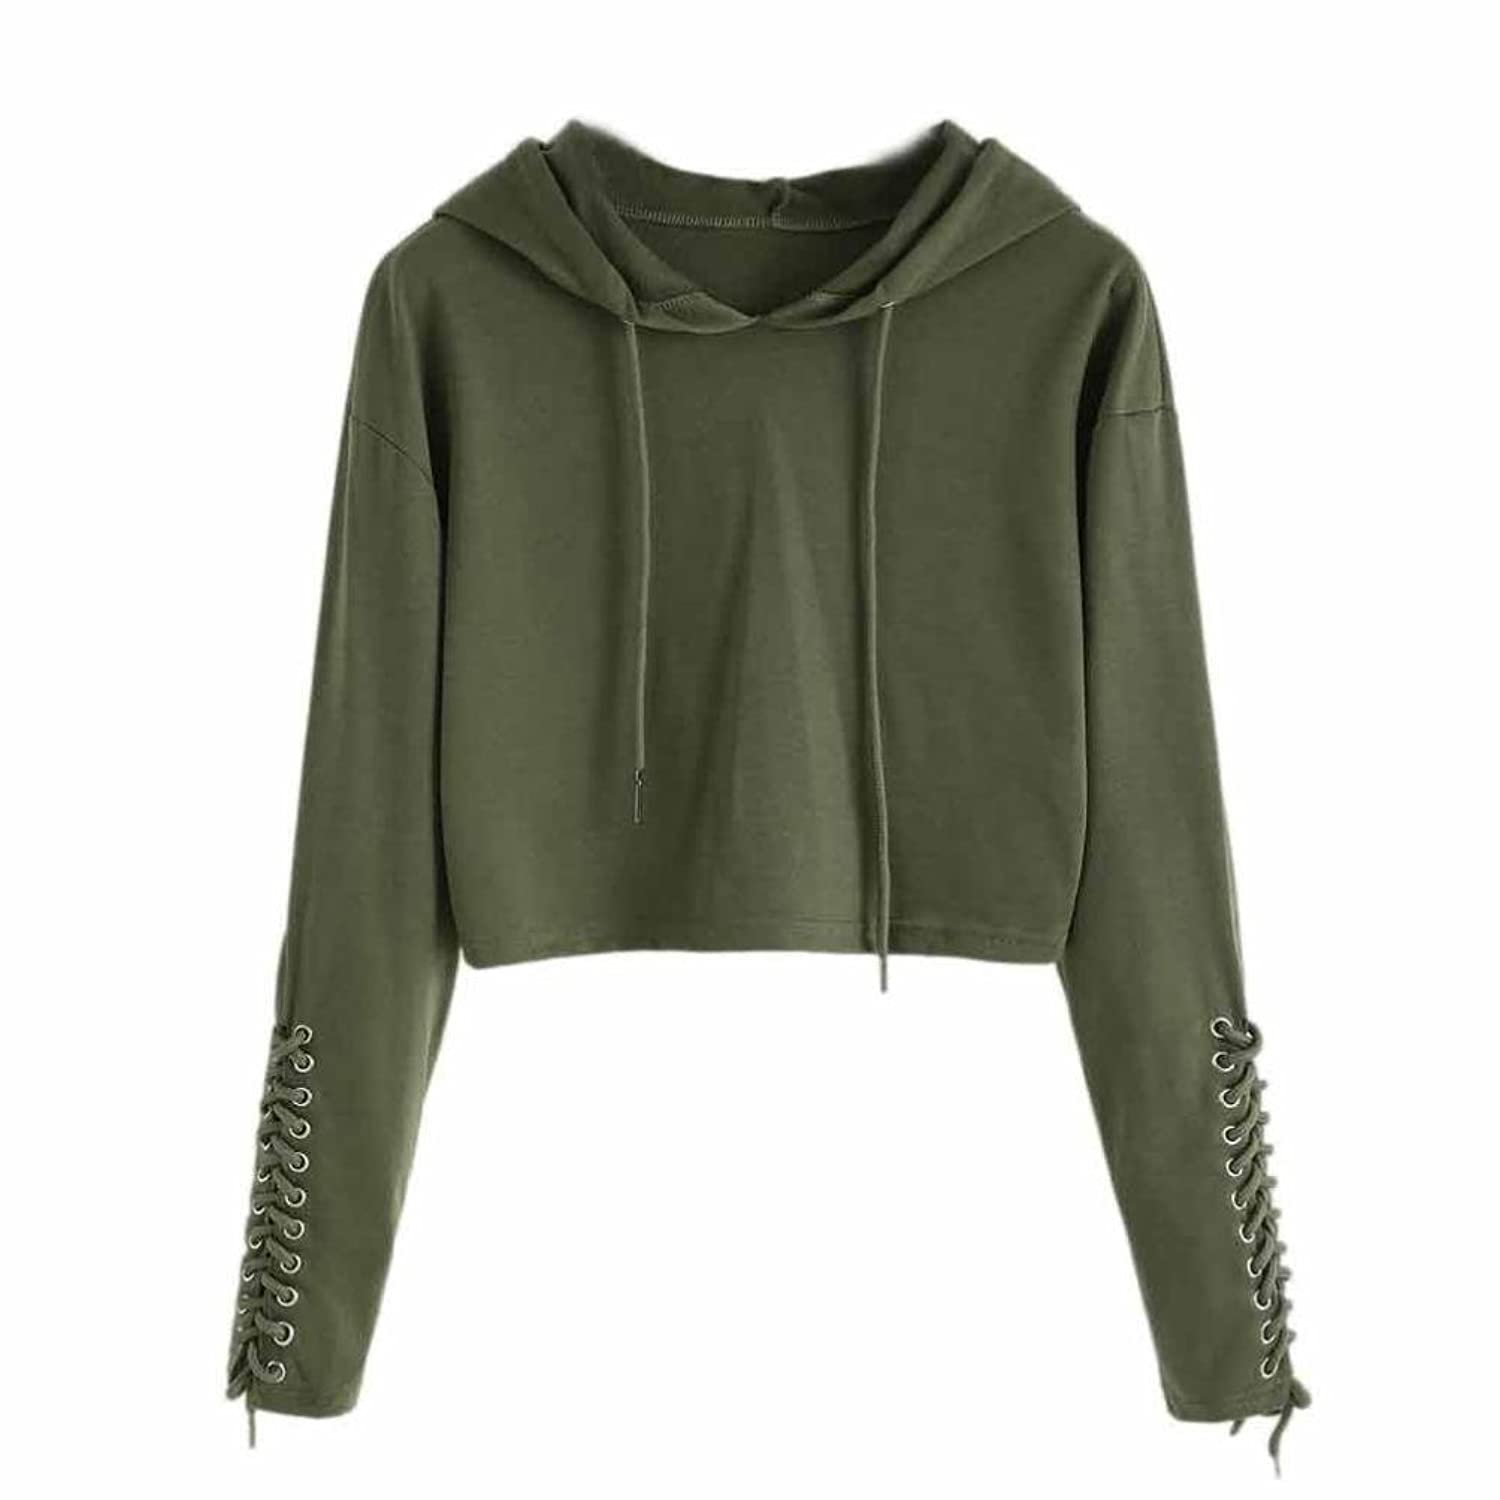 d78e8398785 Soft and comfortable. ???? ???? crop tops for juniors prime, crop tops for  juniors hoodie, clothes juniors, sweater cropped, sweater crop tops for  juniors, ...